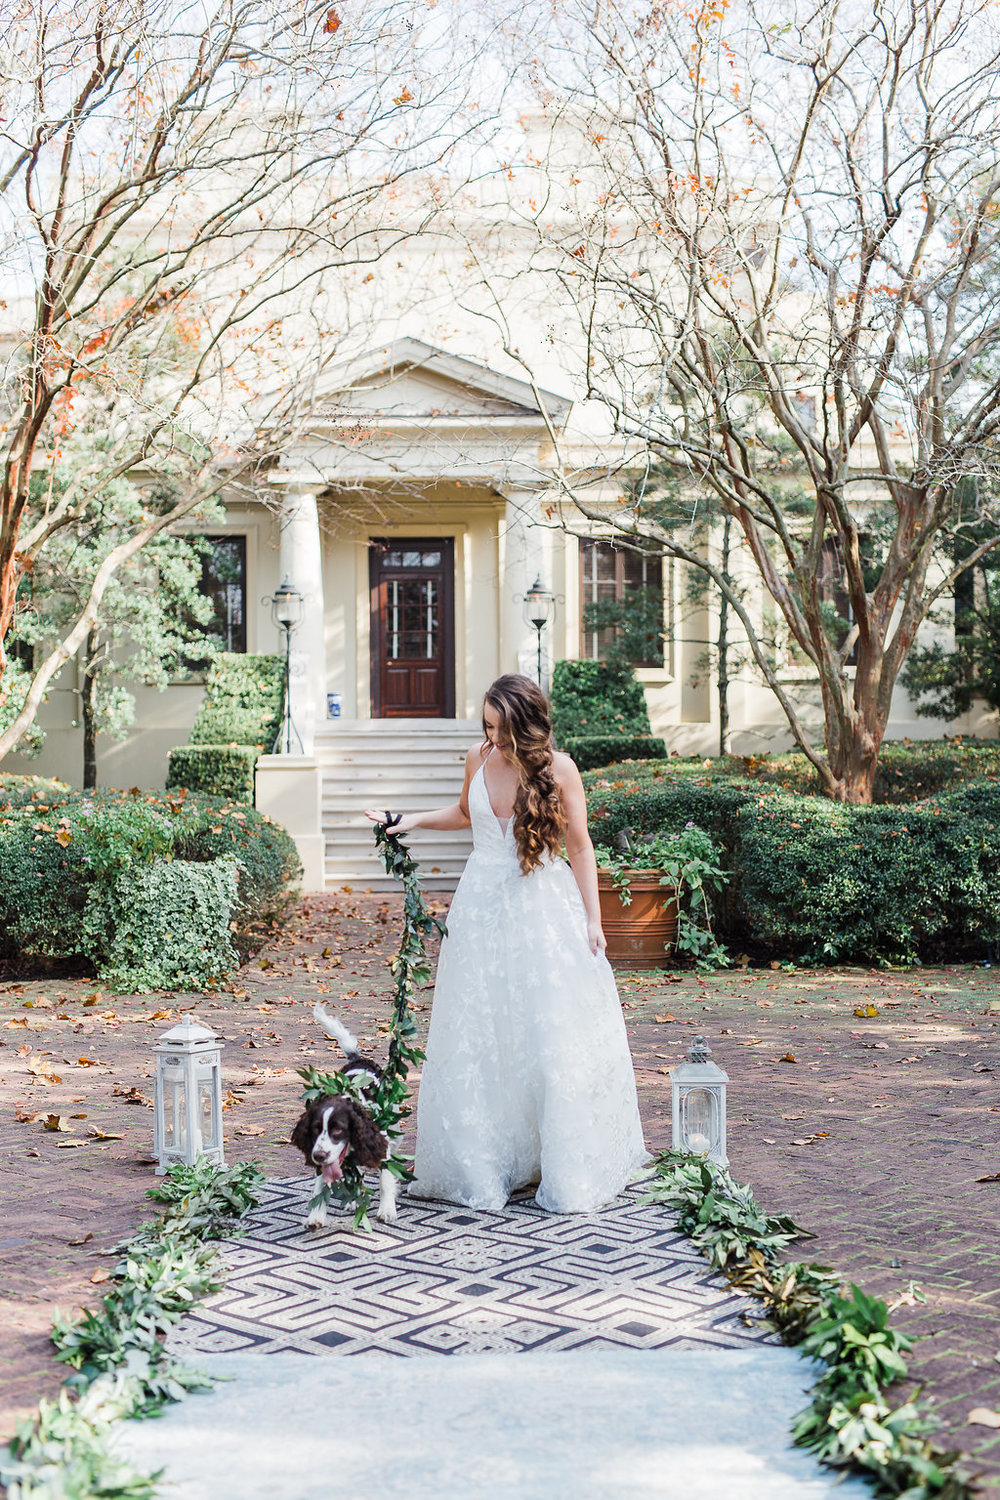 dog-ringbearer-dog-collar-dog-greenery-leash-ships-of-the-sea-wedding-inspiration-savannah-wedding-planner-savannah-event-designer-savannah-bridal-shop-blush-by-hayley-paige-fleur-de-lis-wedding-dress-ivory-and-beau.JPG